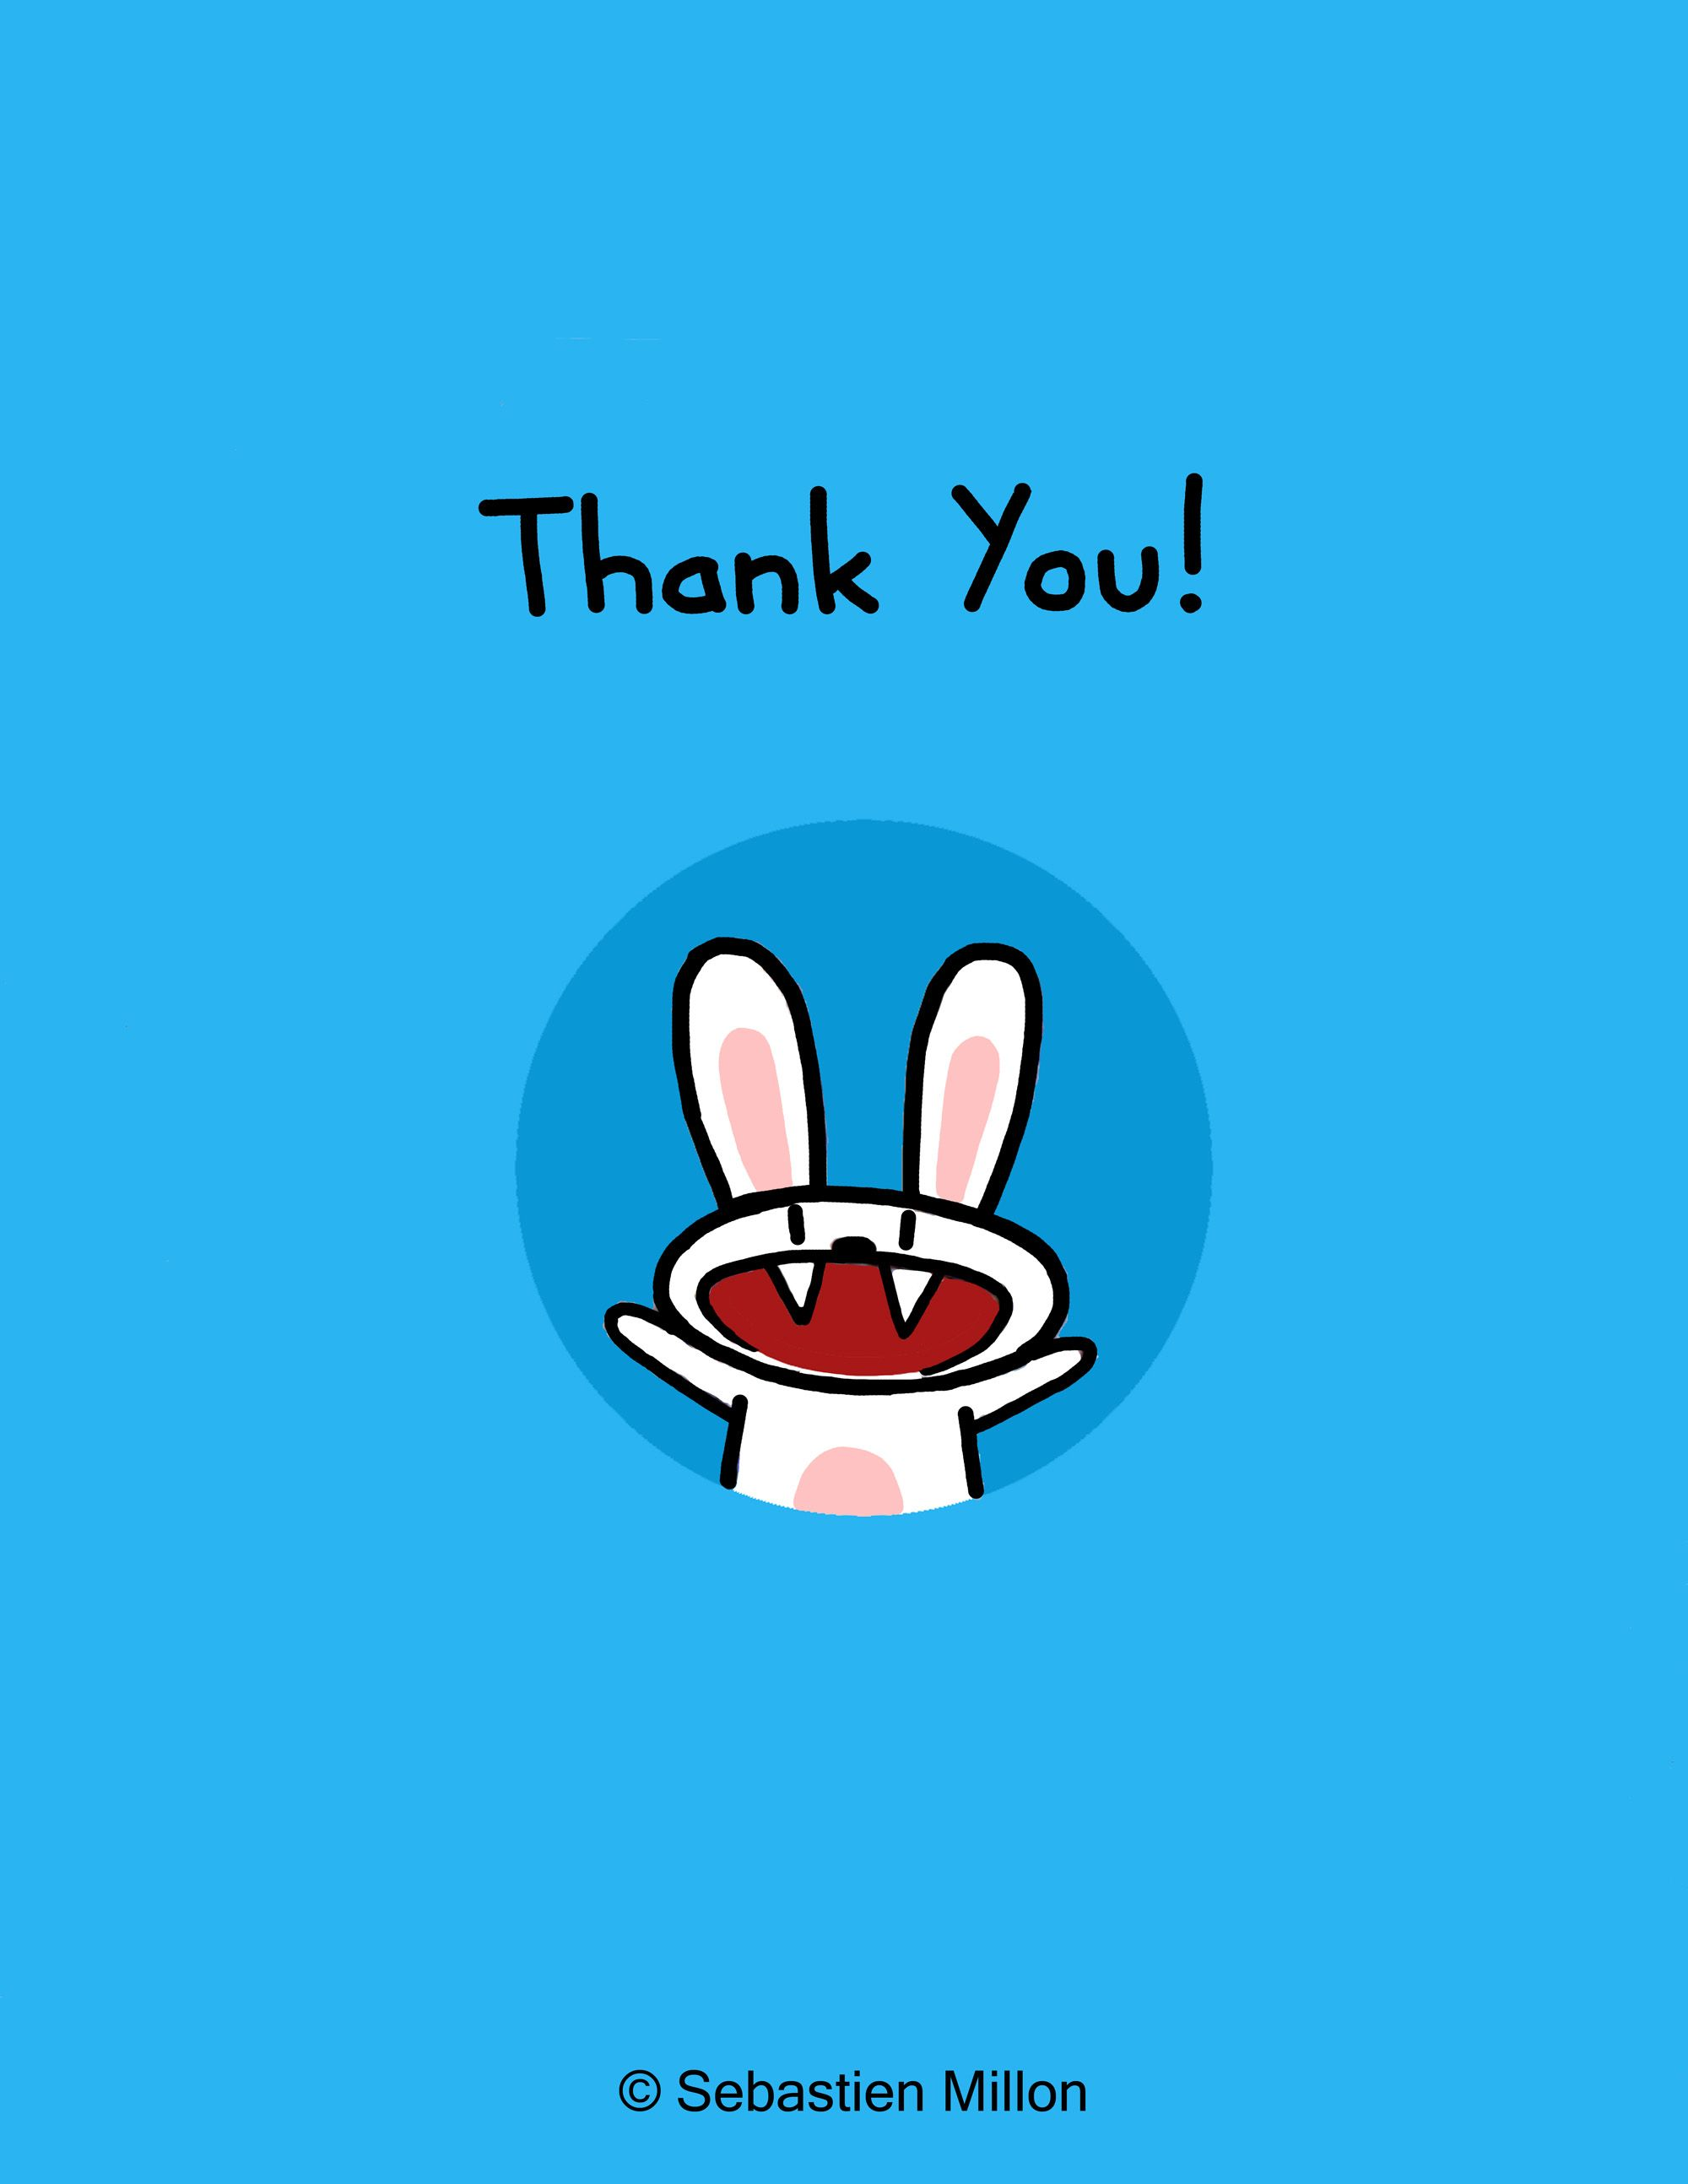 Thank You Card Design Featuring My Insane Rabbit Character Thank You Images Funny Funny Thank You Cards